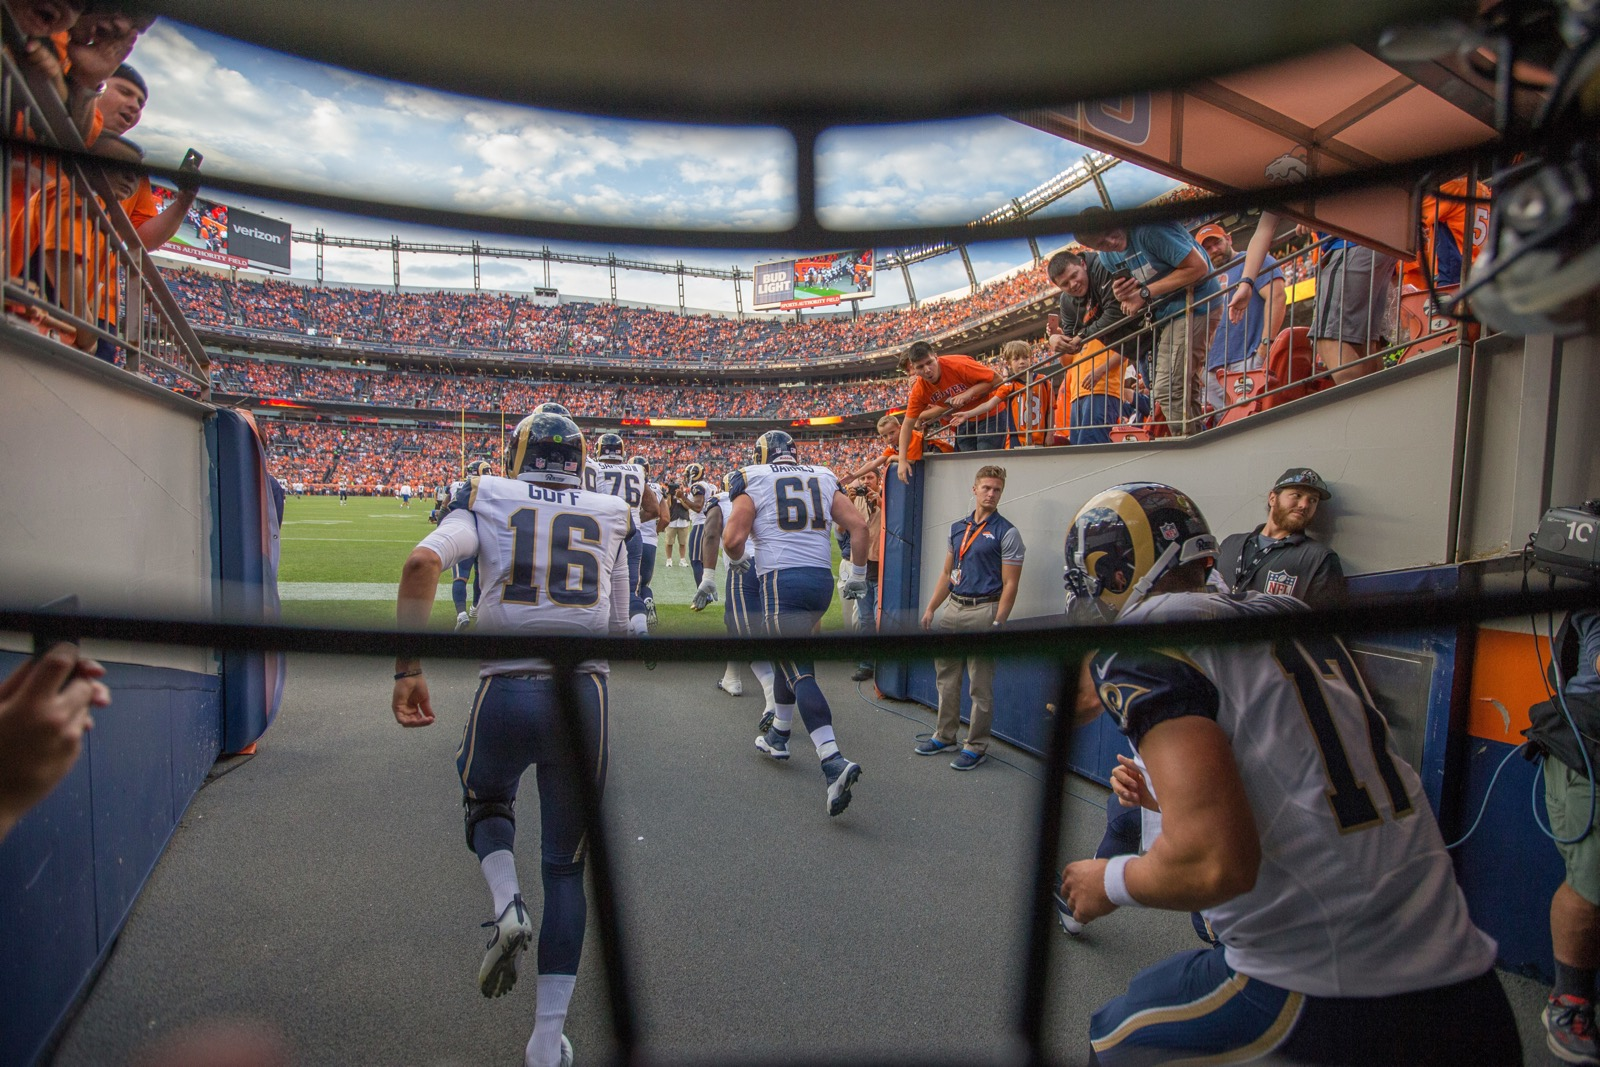 Capturing Football in Action: Photographing the L.A. Rams